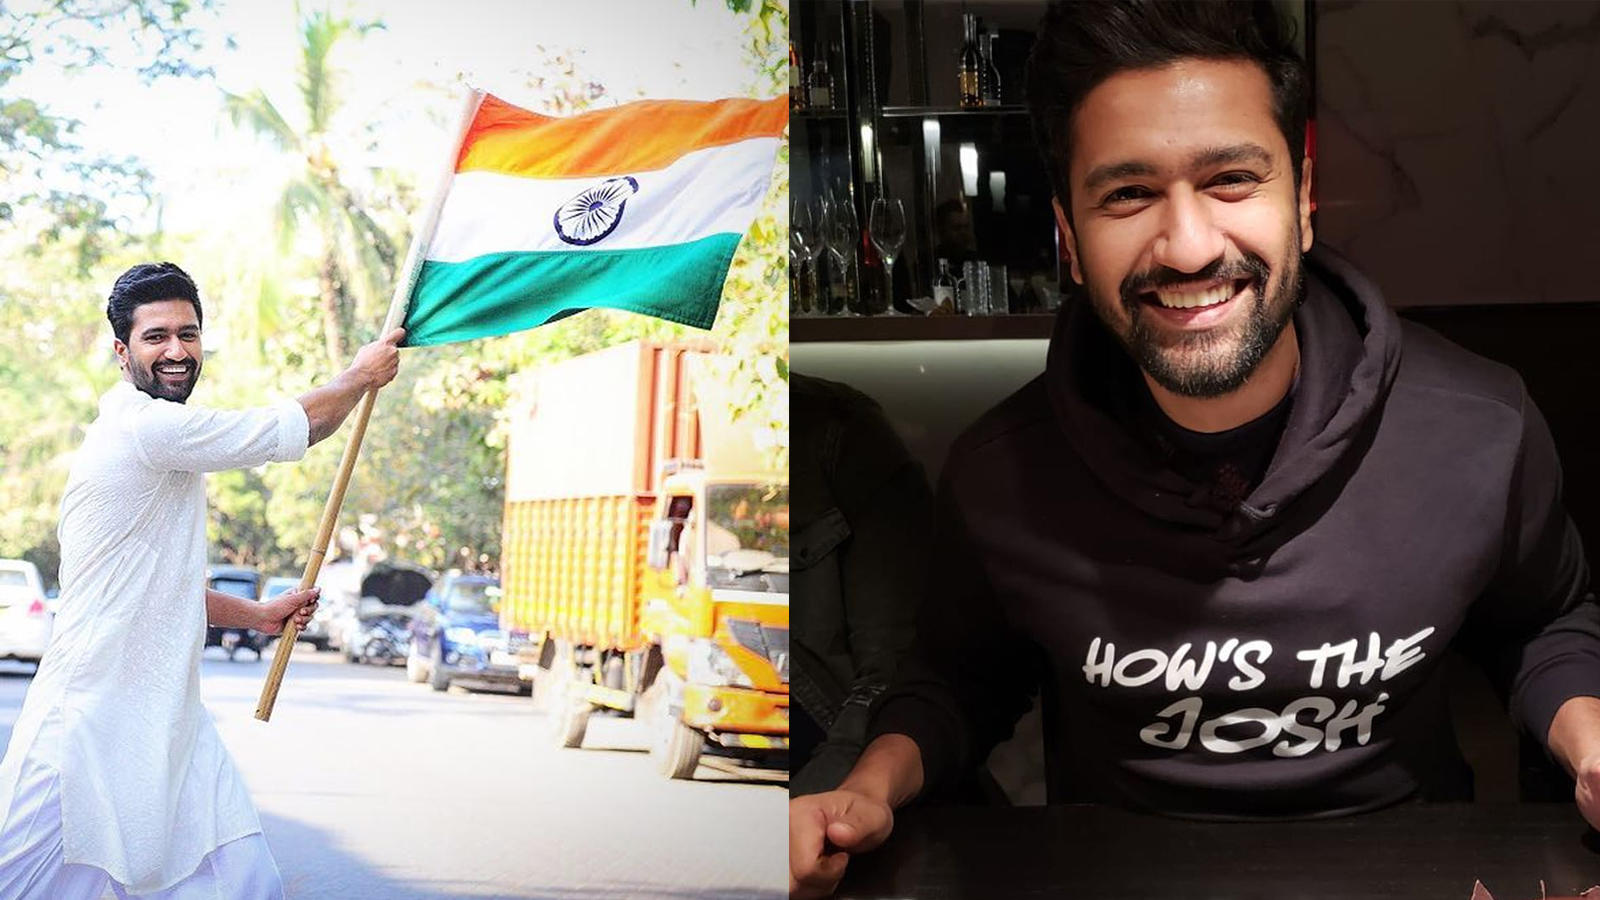 21827cd68 Vicky Kaushal: Toiled hard for this work pressure. FacebookTwitterPintrest